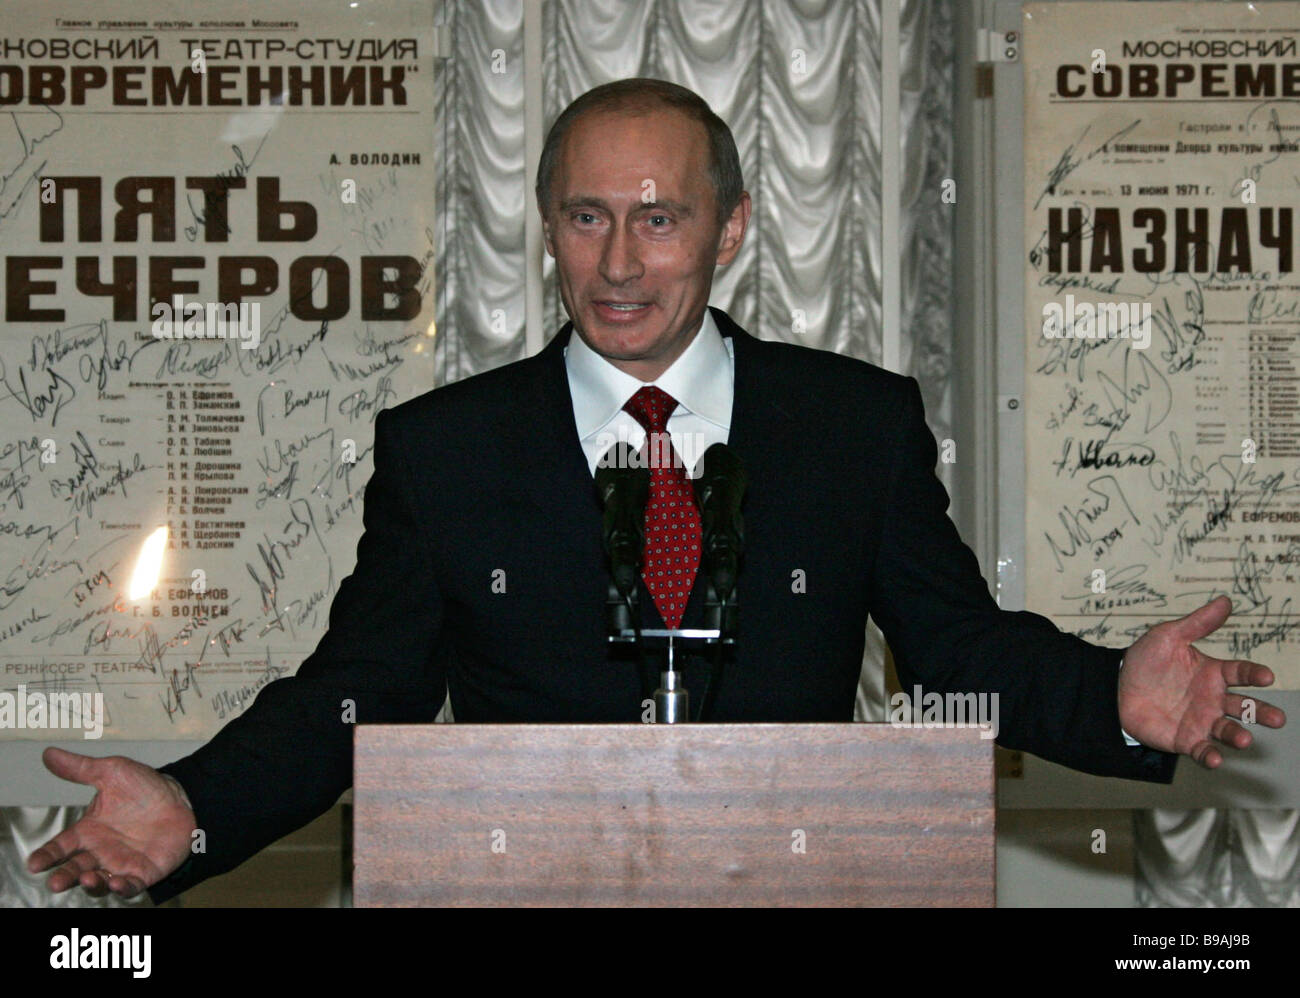 Russian president offering his greetings on the day of the Sovremennik Theatre s jubilee - Stock Image